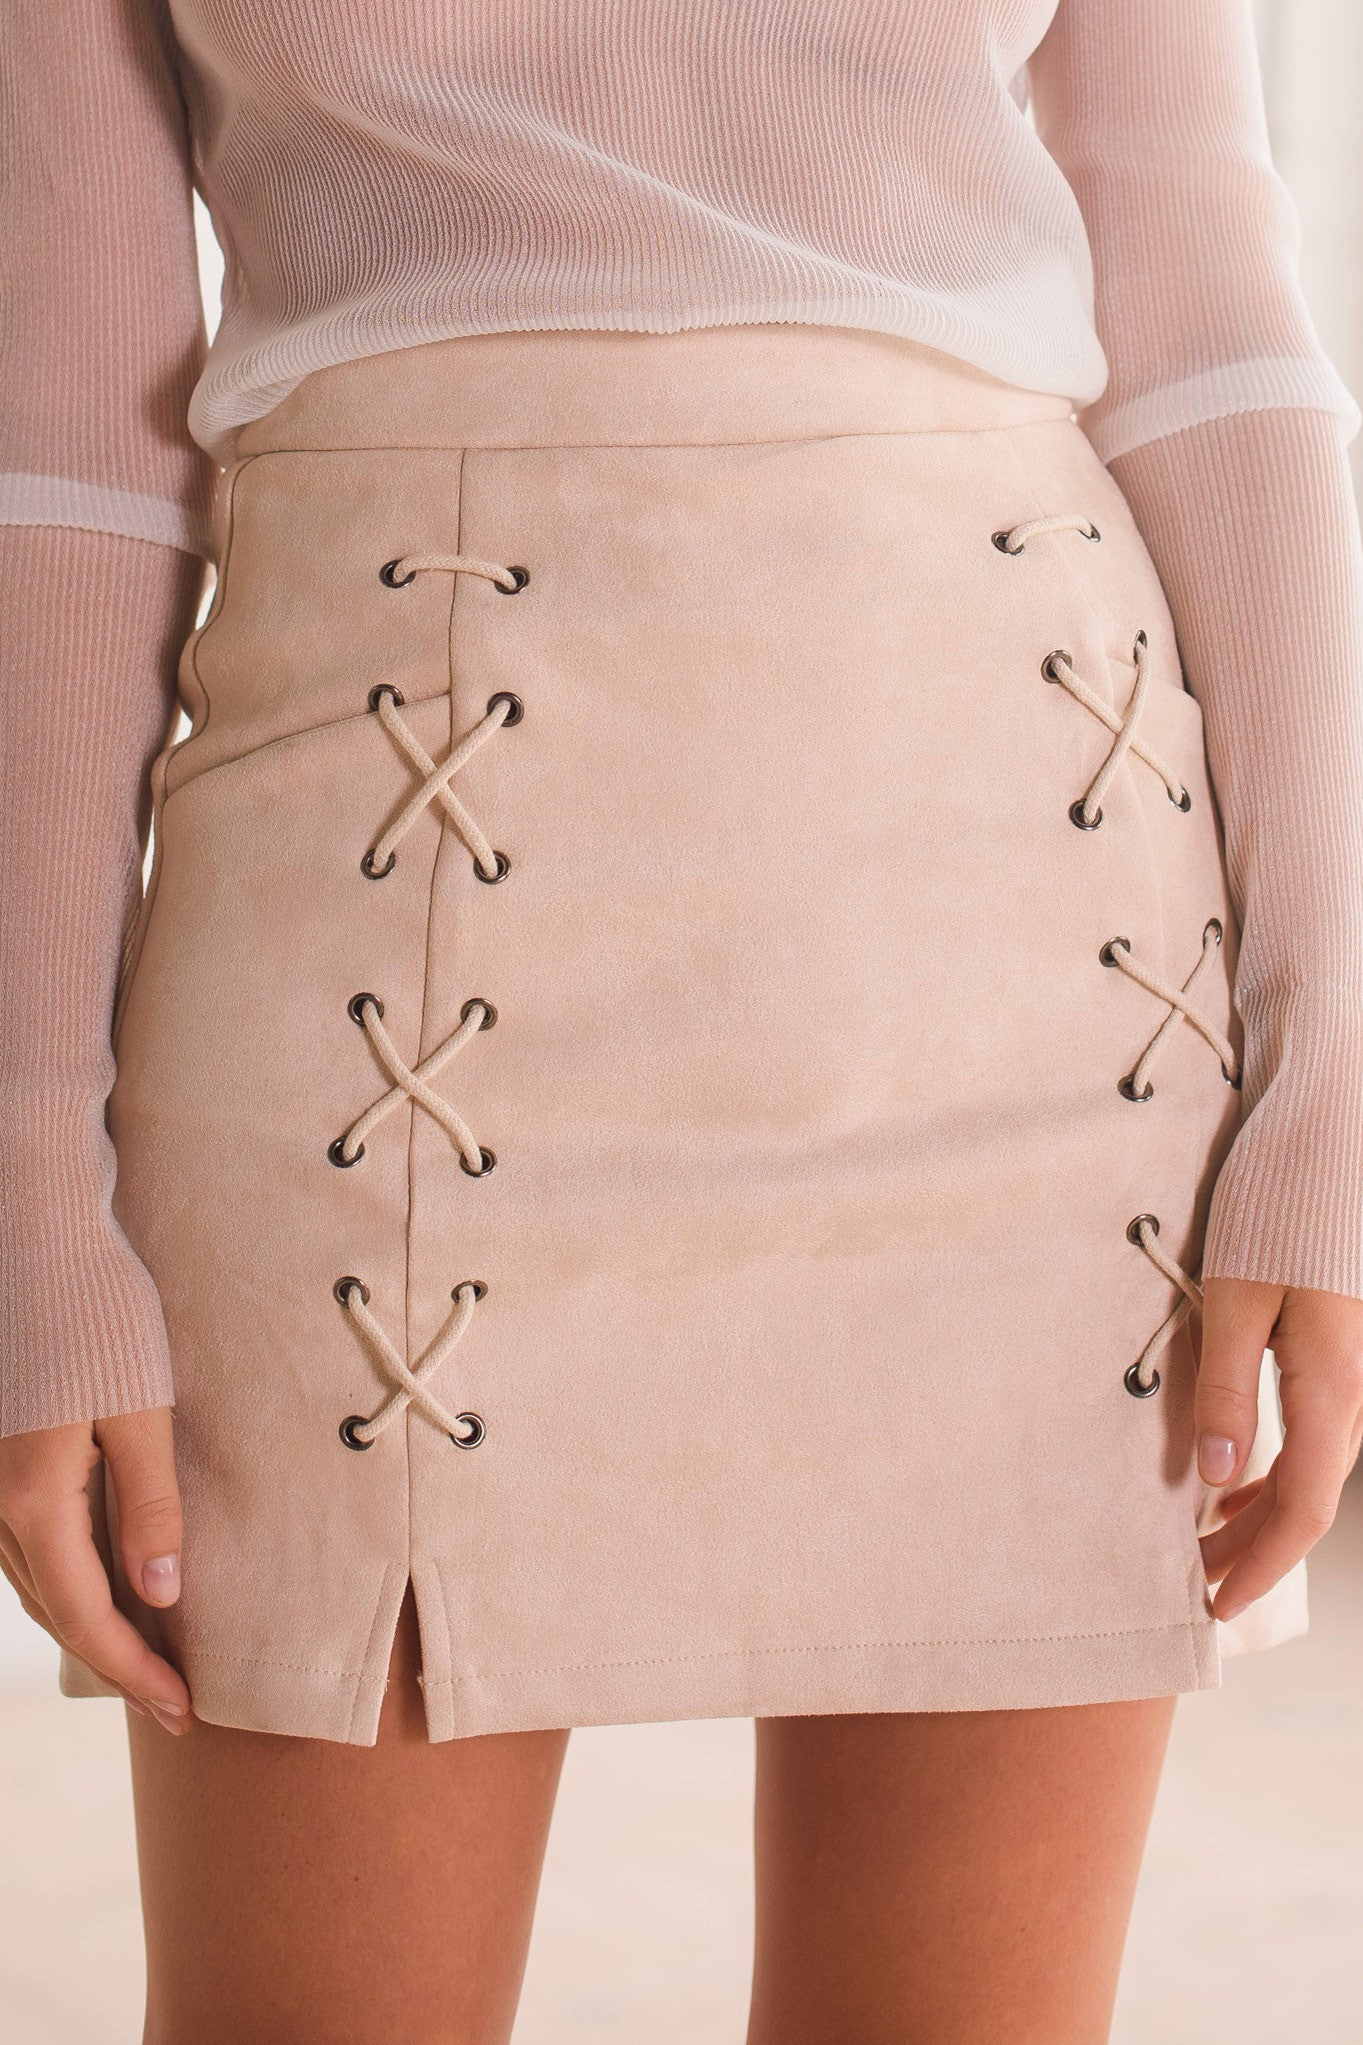 Noughts and Crosses Skirt - Beige